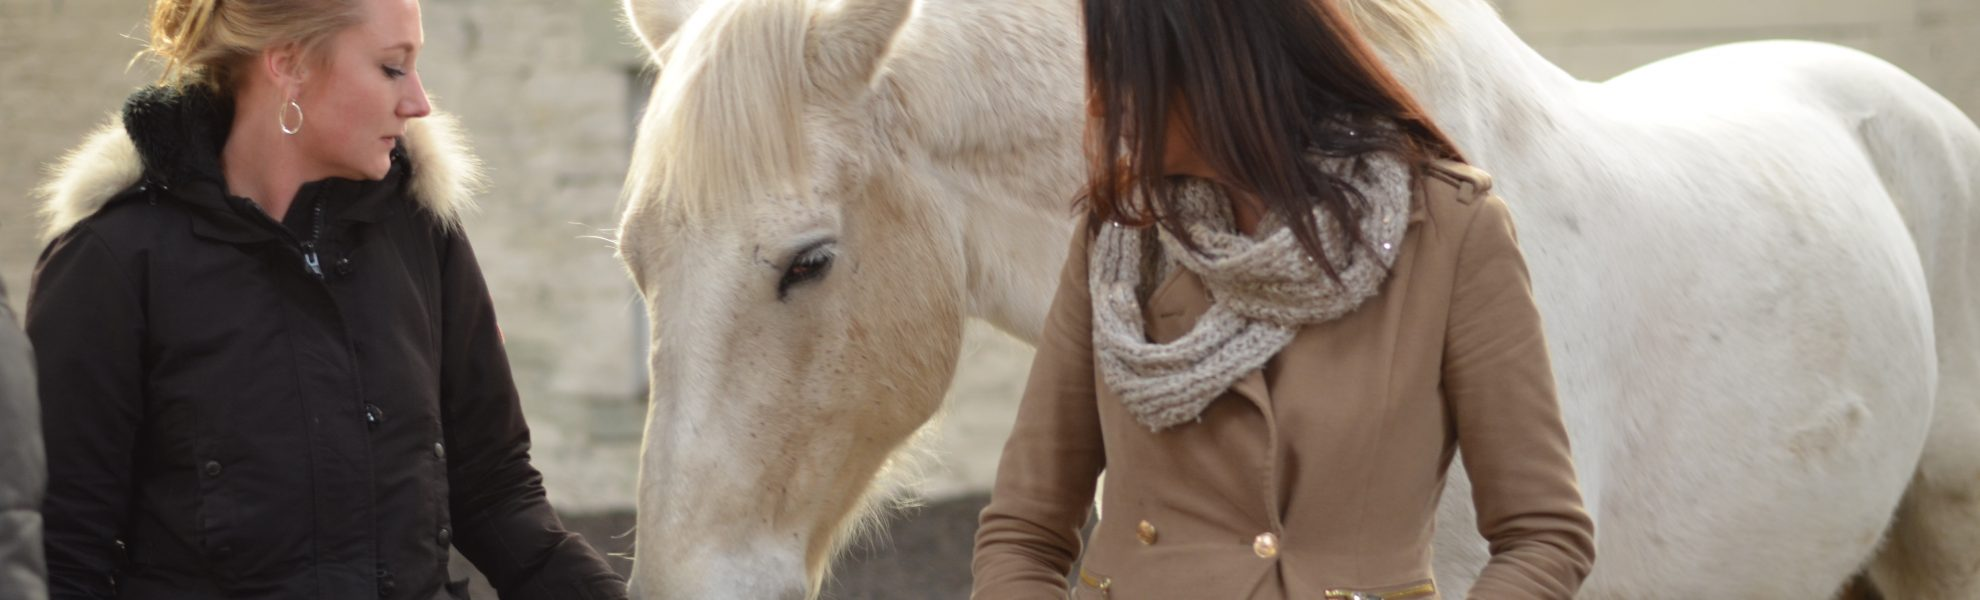 Equine Therapy, Art Group, Aromatherapy, Acupuncture, Mindfulness